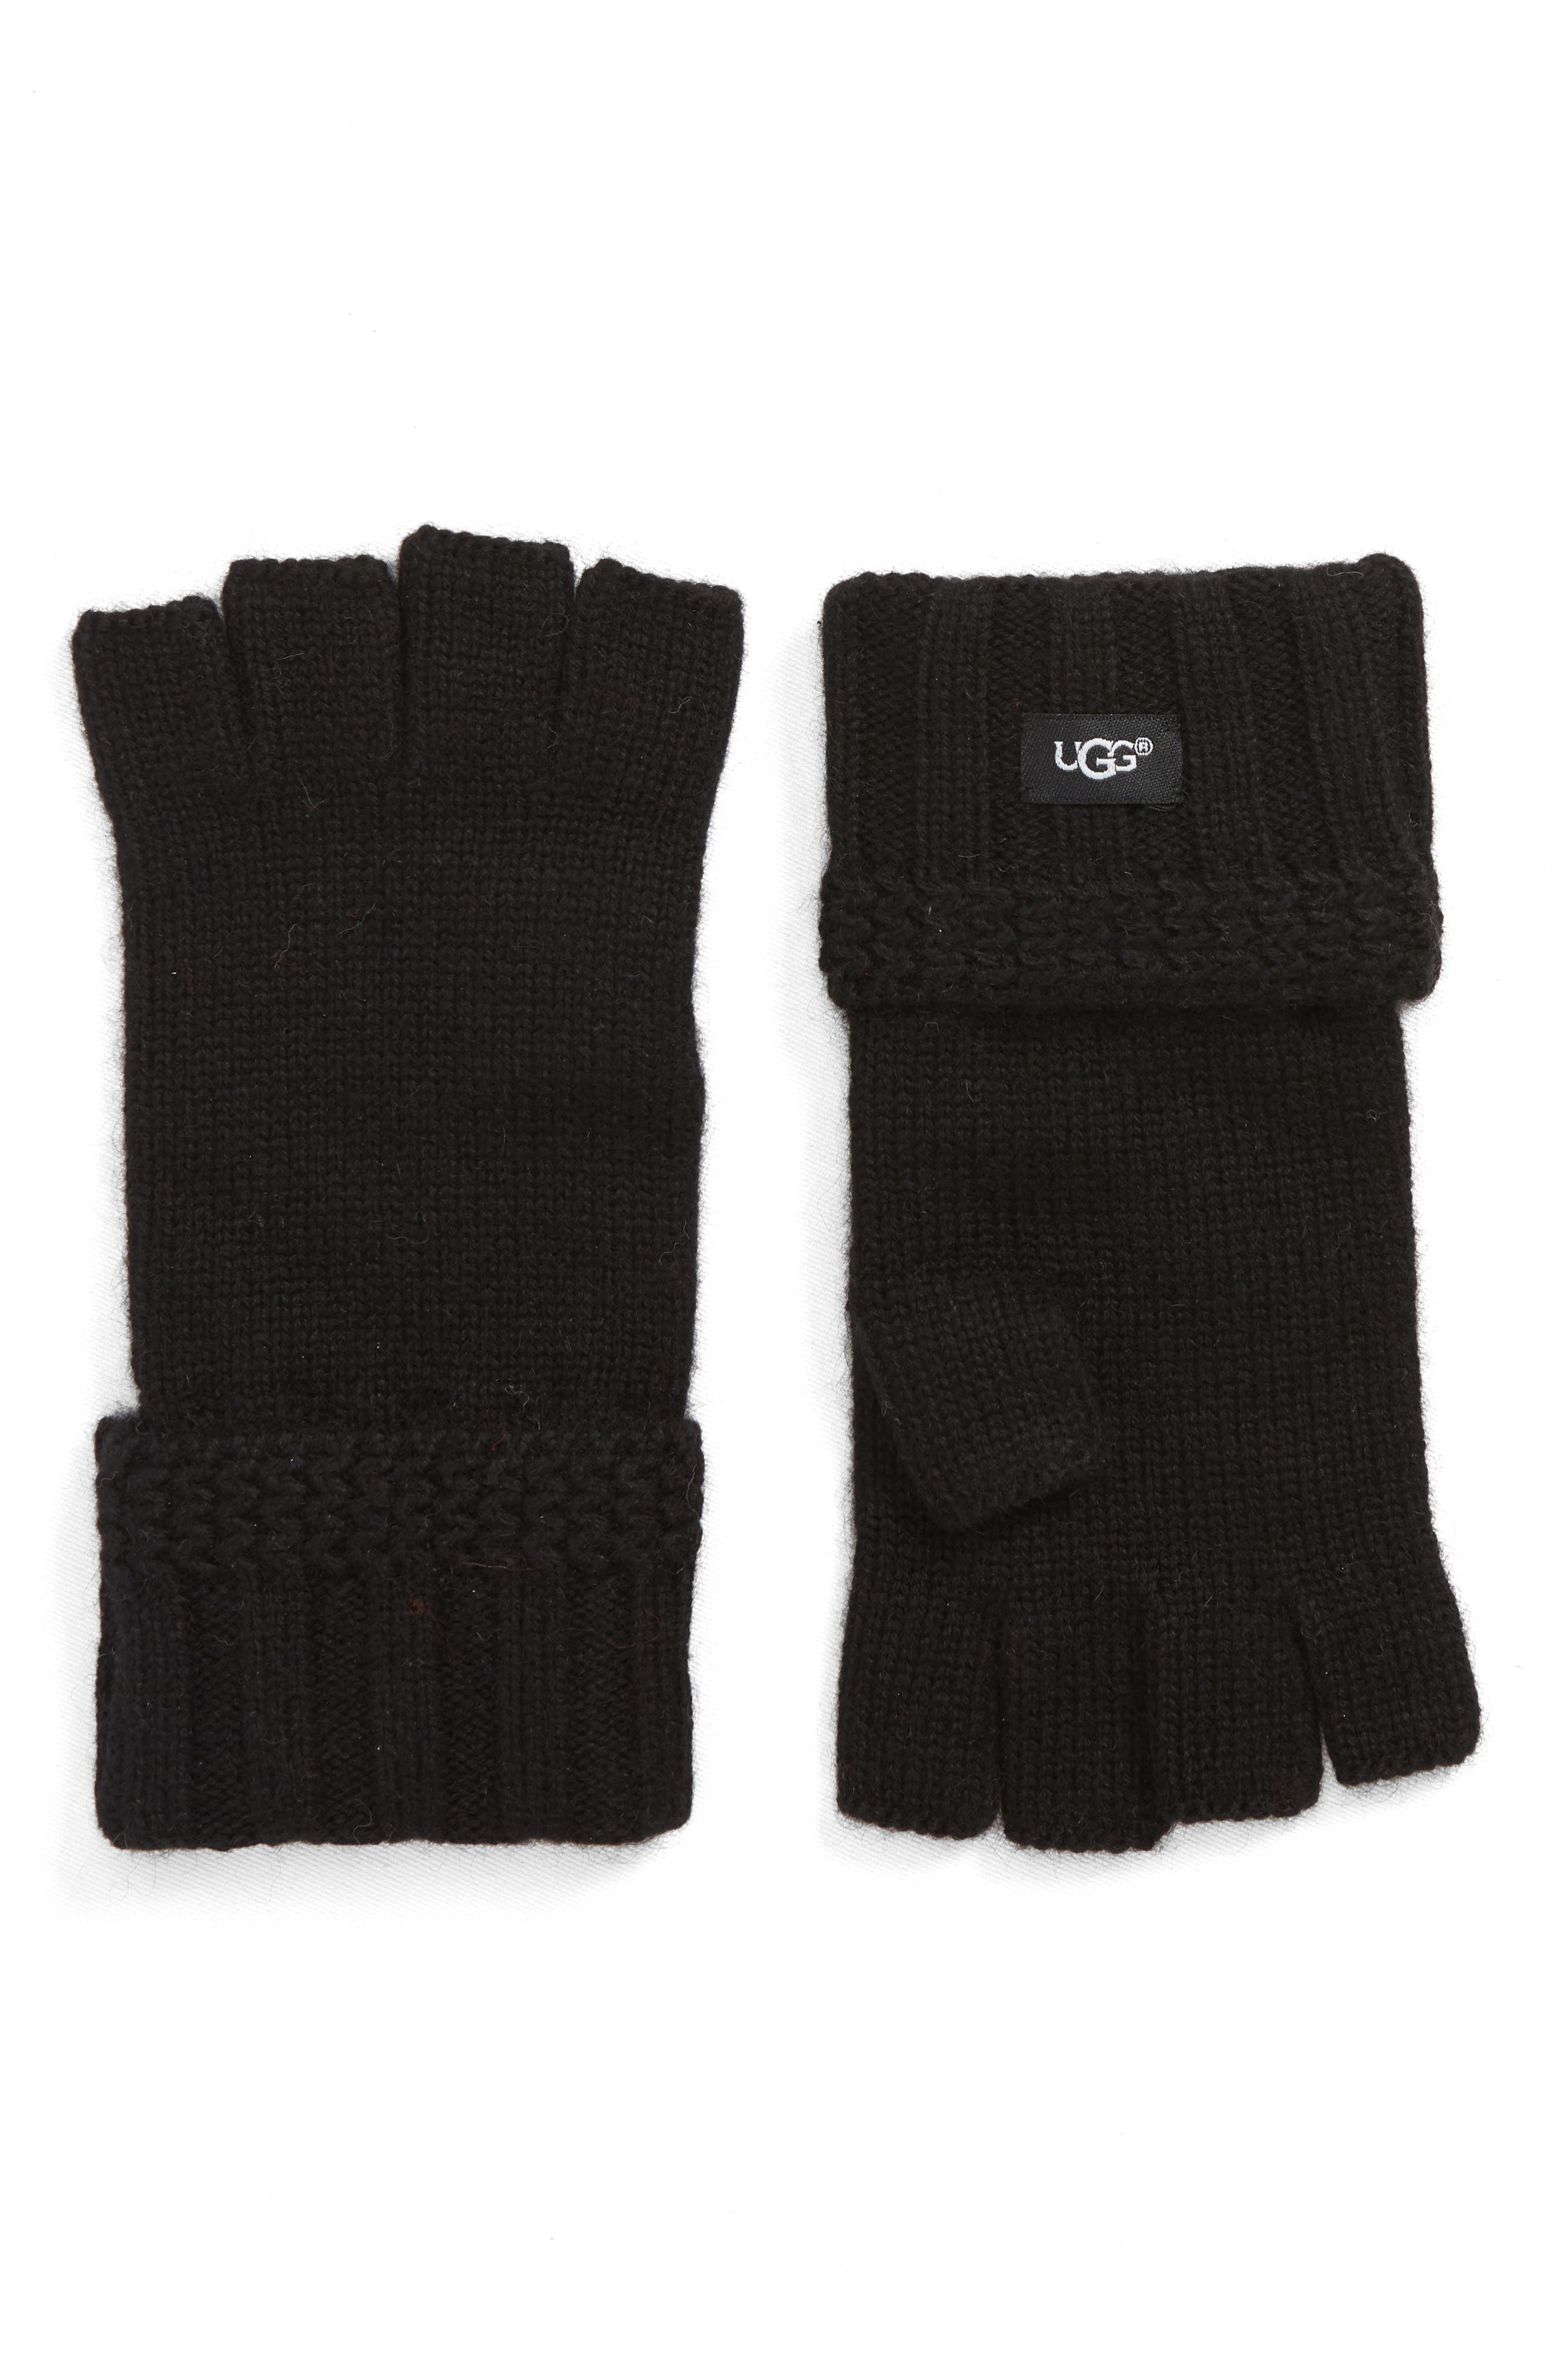 UGG<sup>®</sup> Textured Fingerless Knit Gloves,                         Main,                         color, 001